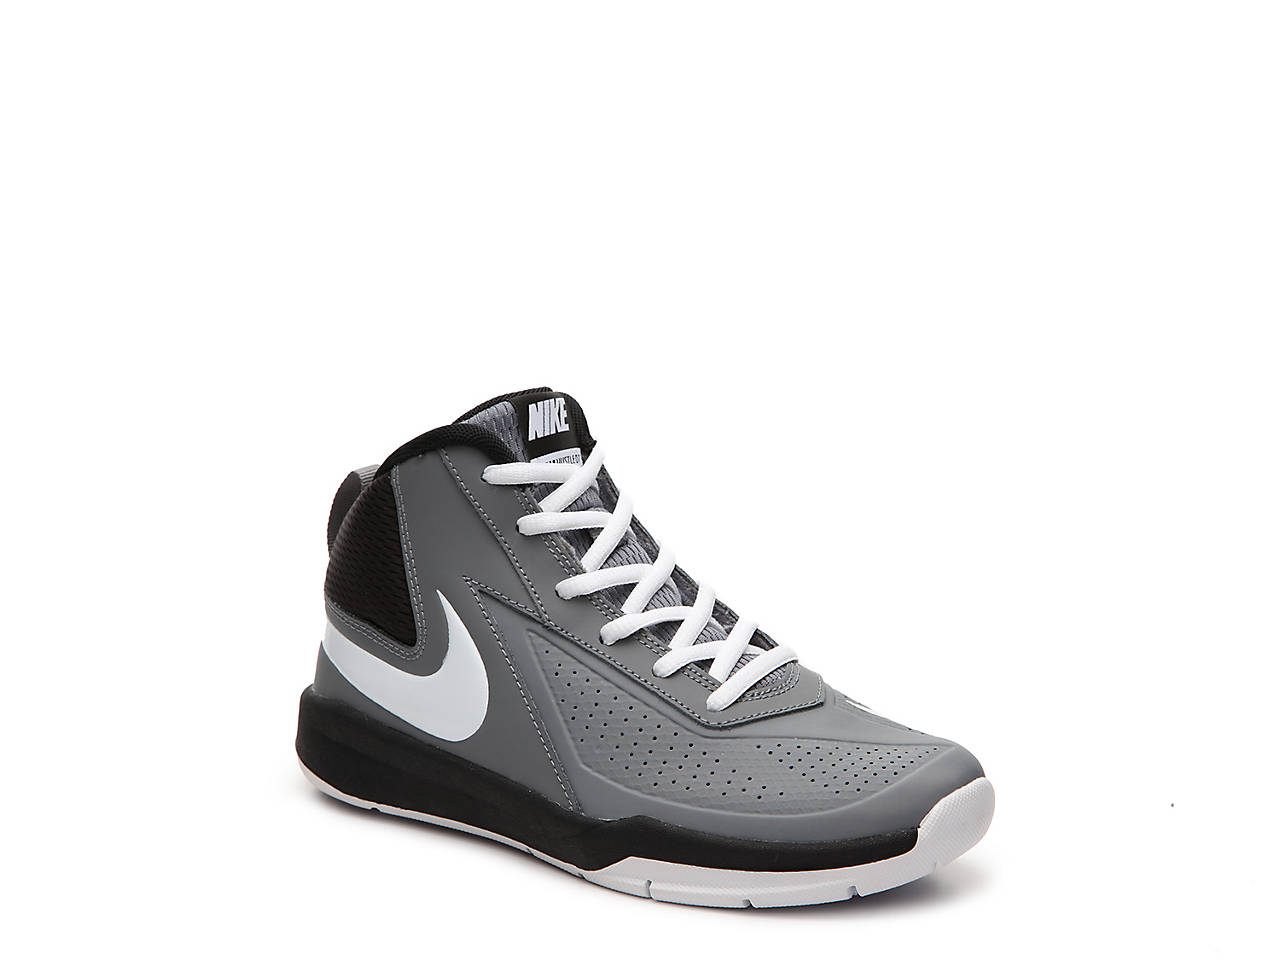 nike basketball shoes for girls black and white. team hustle d7 youth basketball shoe nike shoes for girls black and white s